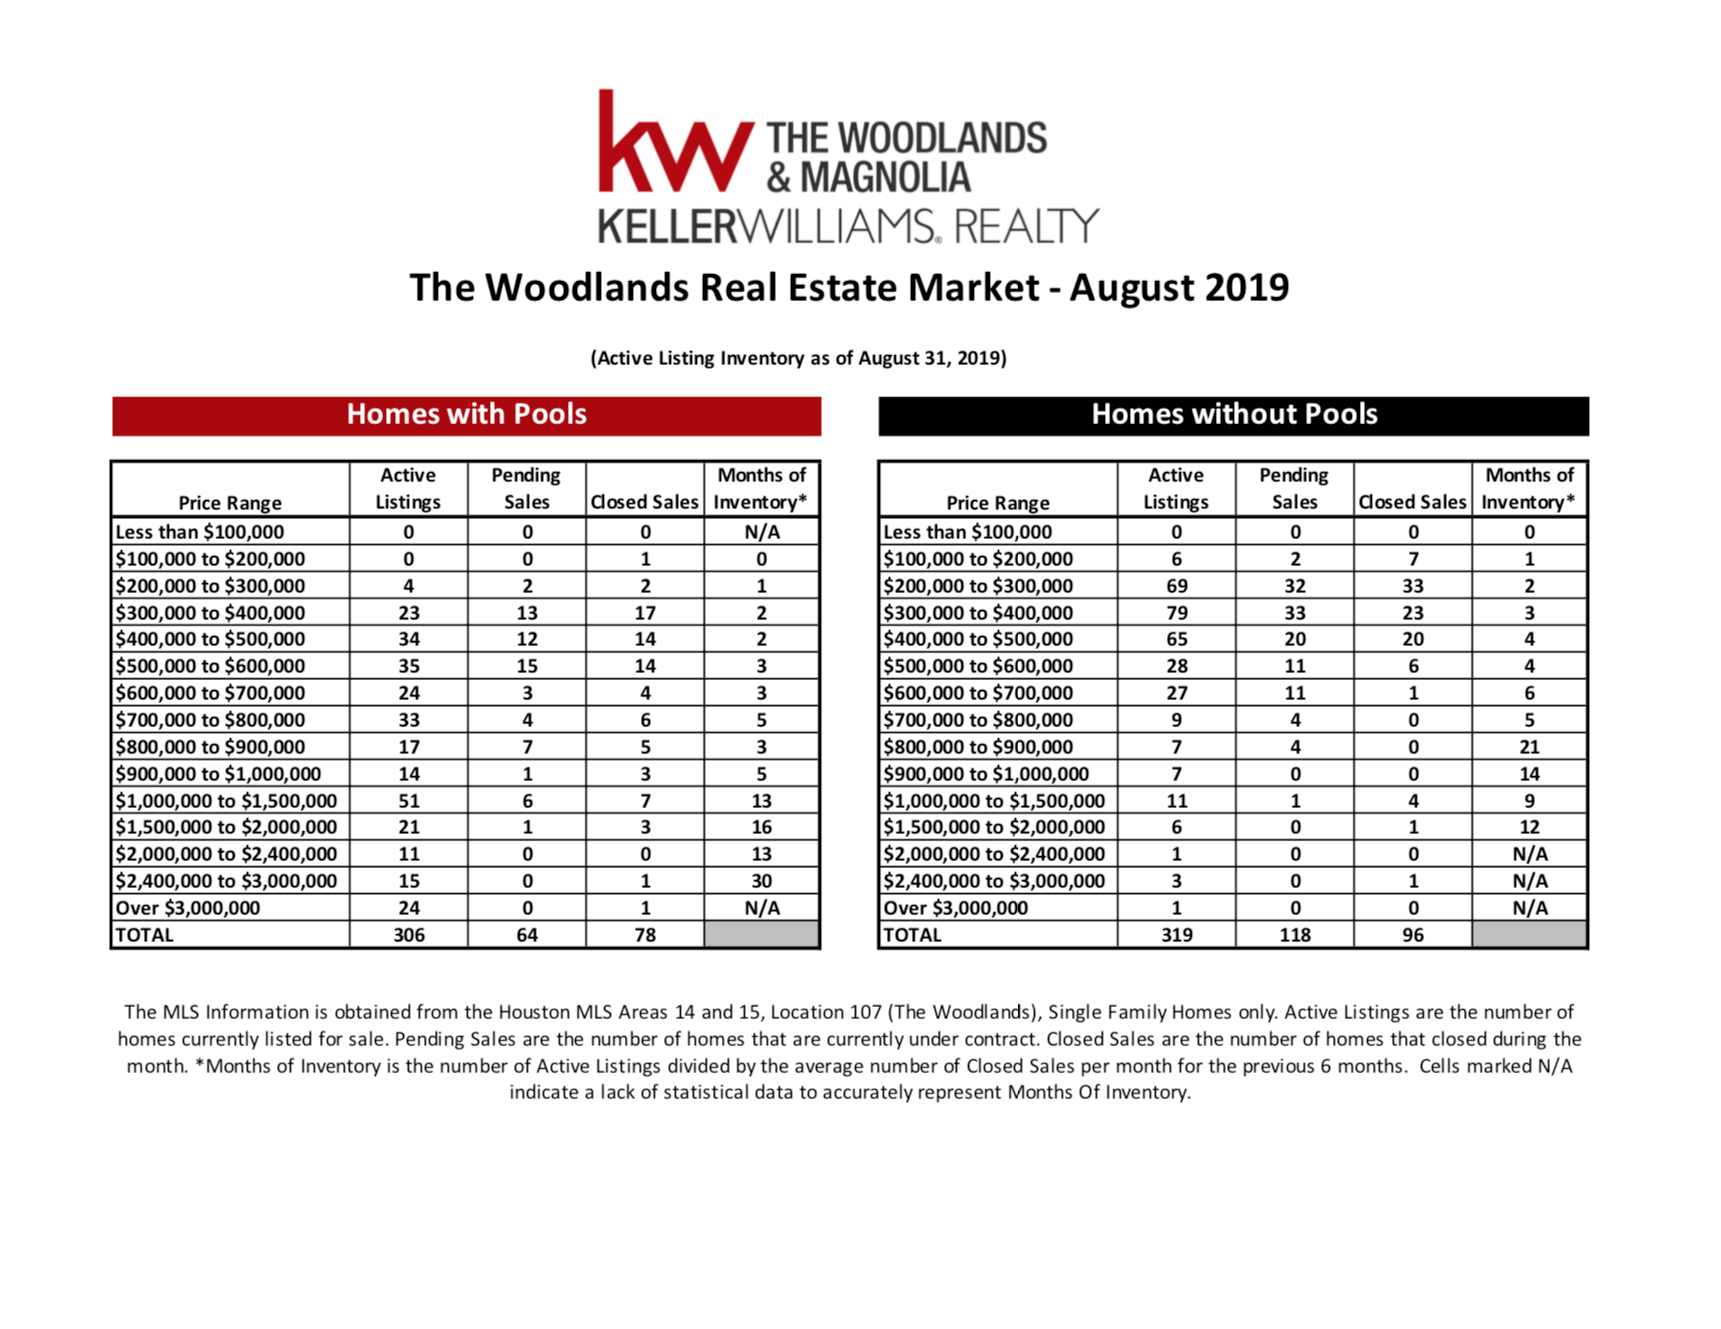 , August 2019 MarketWatch Report – The Woodlands, KW Woodlands